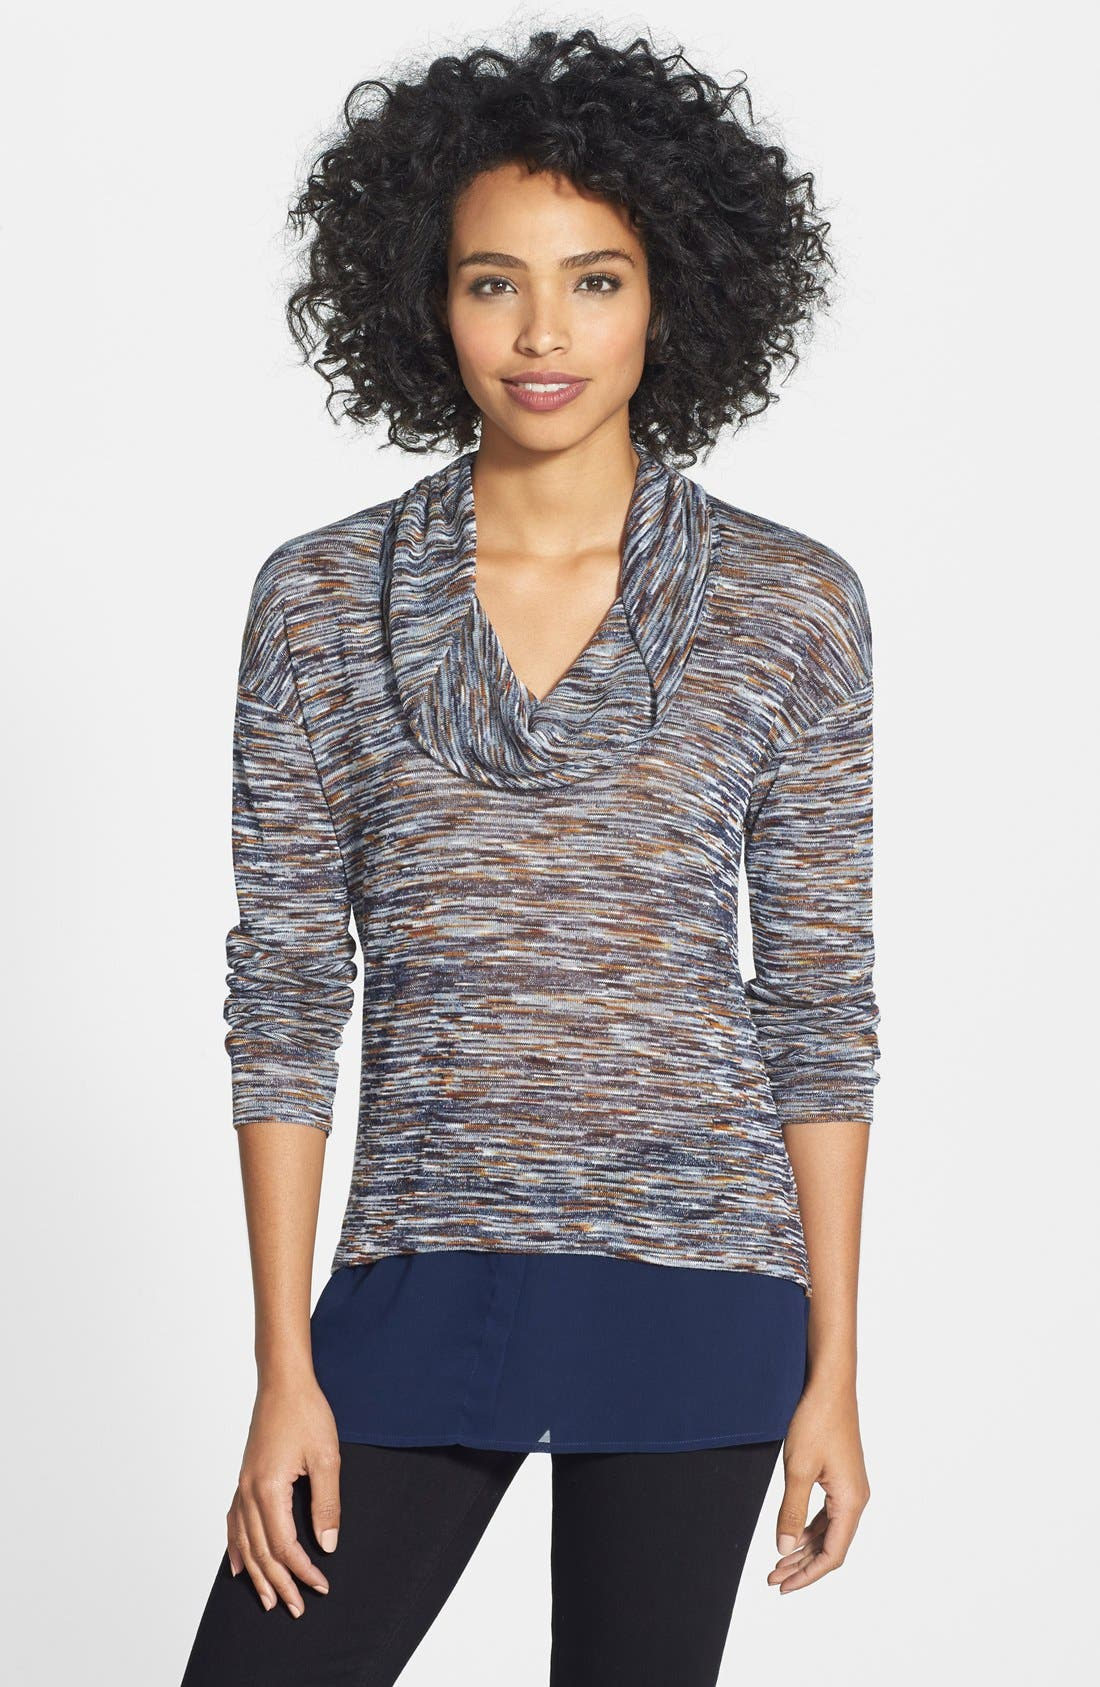 Alternate Image 1 Selected - KUT from the Kloth 'Isa' Layer Look Cowl Neck Top